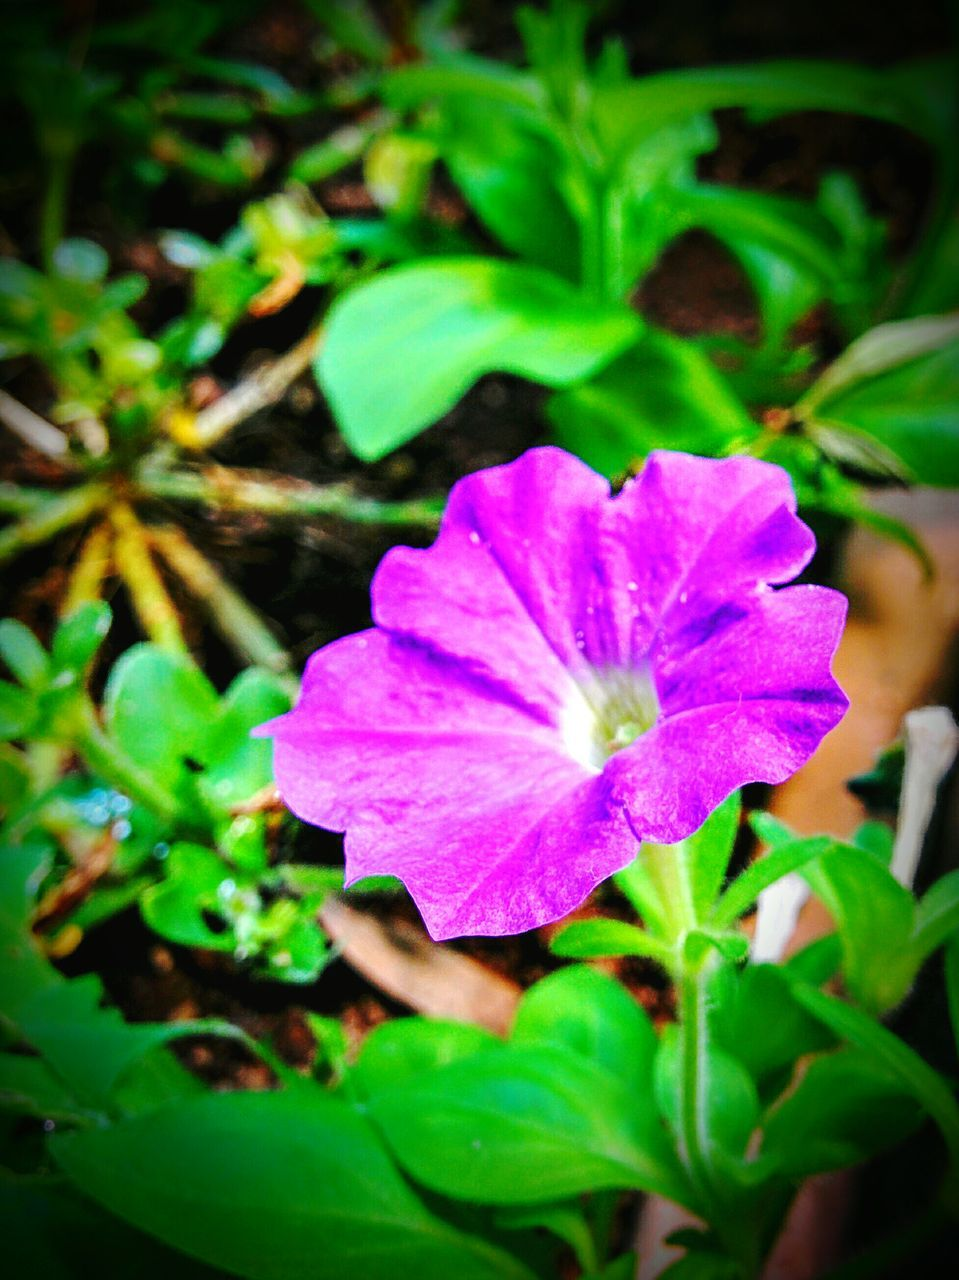 flower, petal, plant, fragility, growth, beauty in nature, freshness, nature, leaf, flower head, green color, outdoors, purple, blooming, day, close-up, no people, petunia